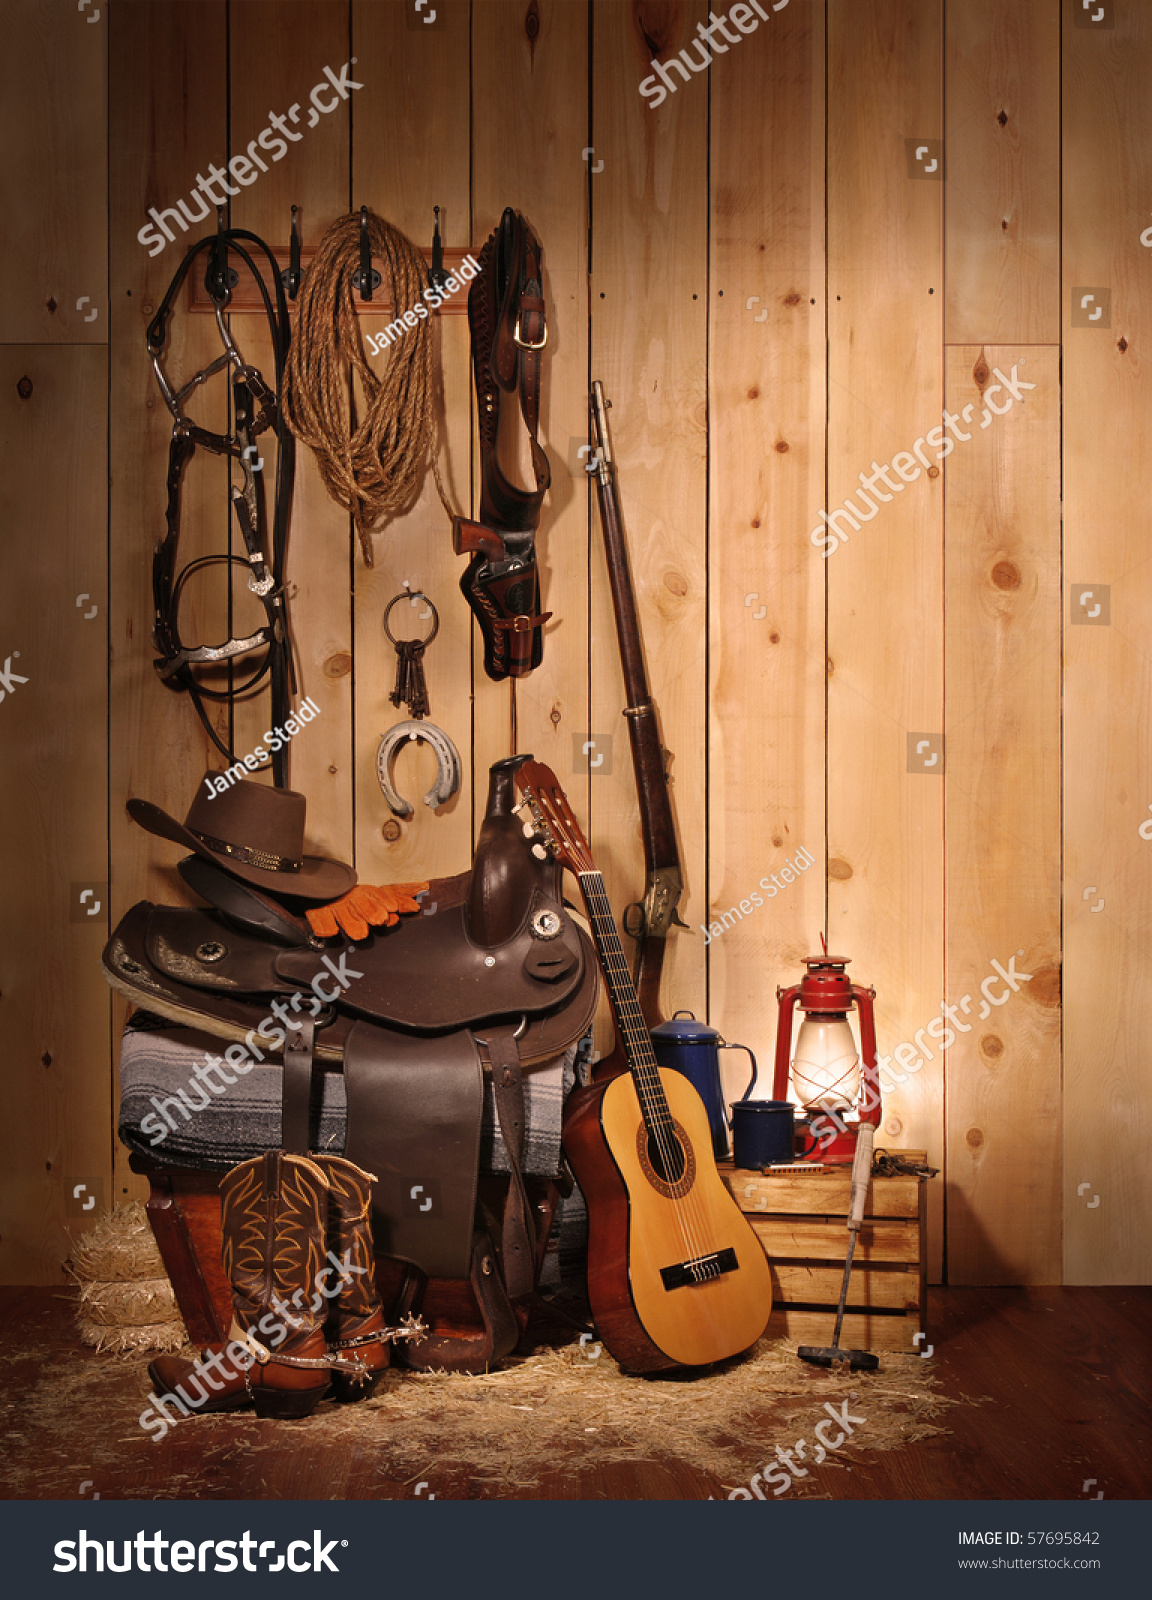 Western Themed Layout Leaving Copy Space Stock Photo